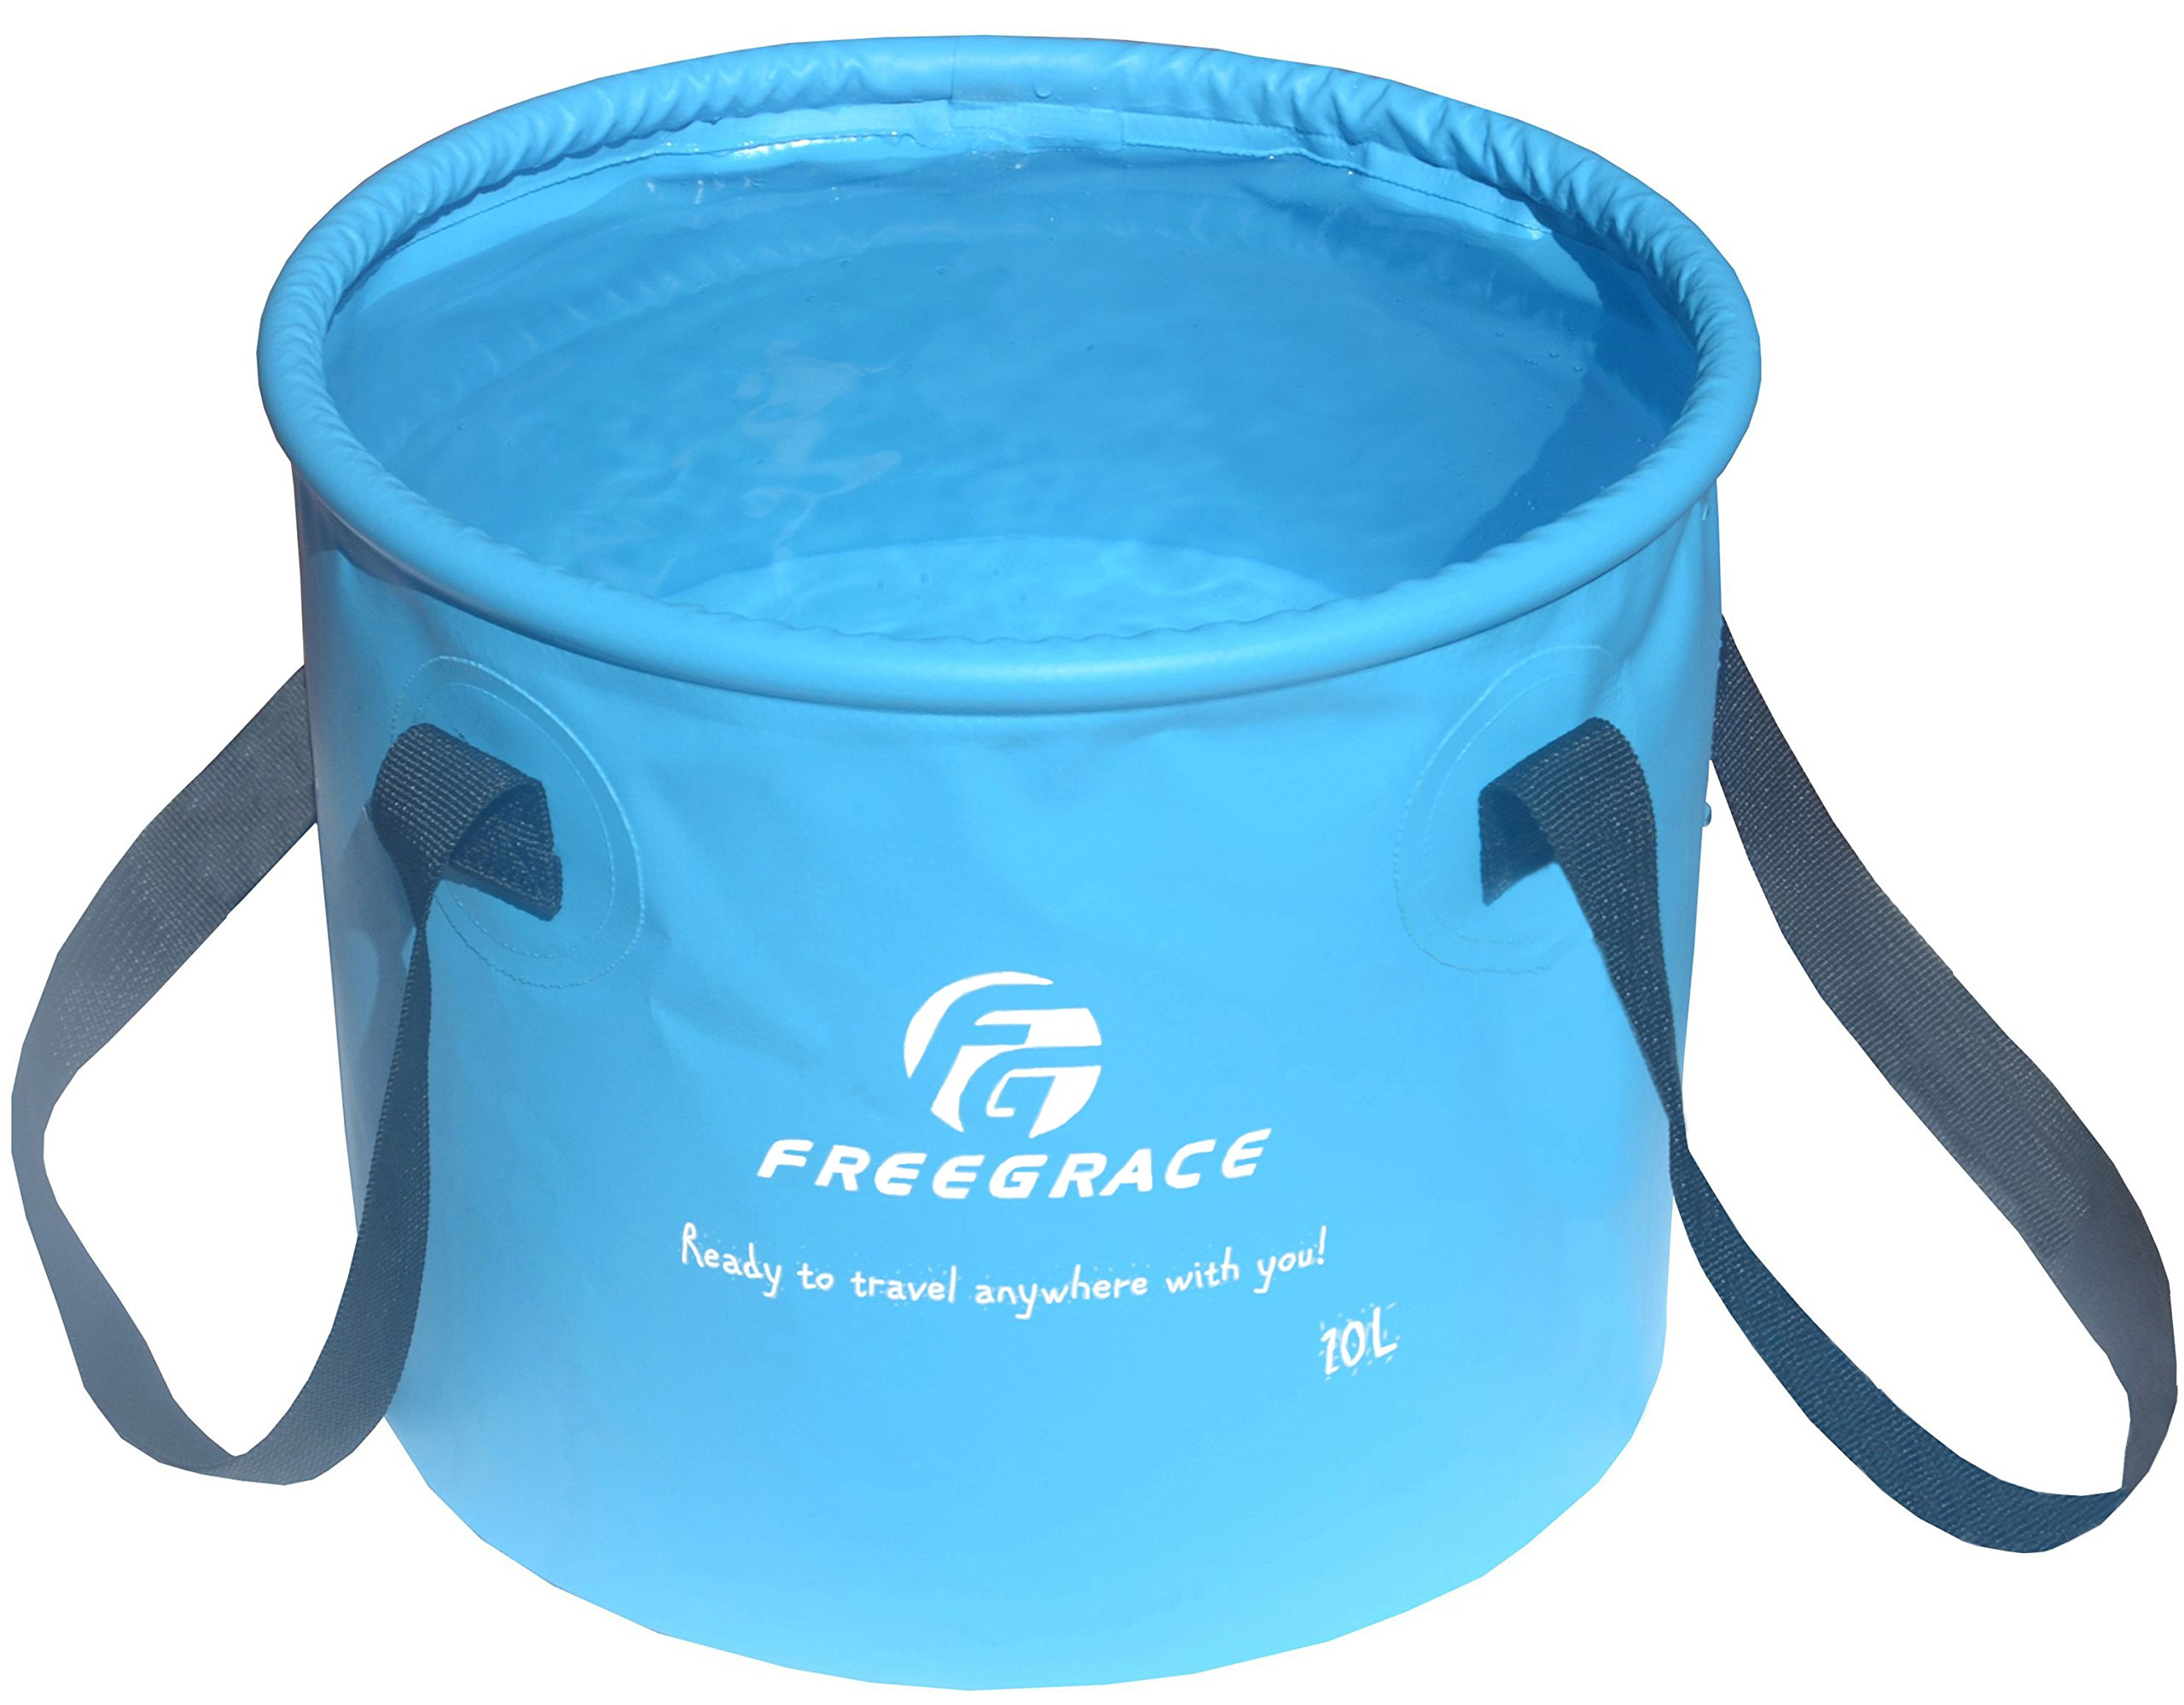 Freegrace Premium Collapsible Bucket -Multifunctional Folding Bucket -Perfect Gear for Camping, Hiking & Travel(Sky Blue,10L) by Freegrace